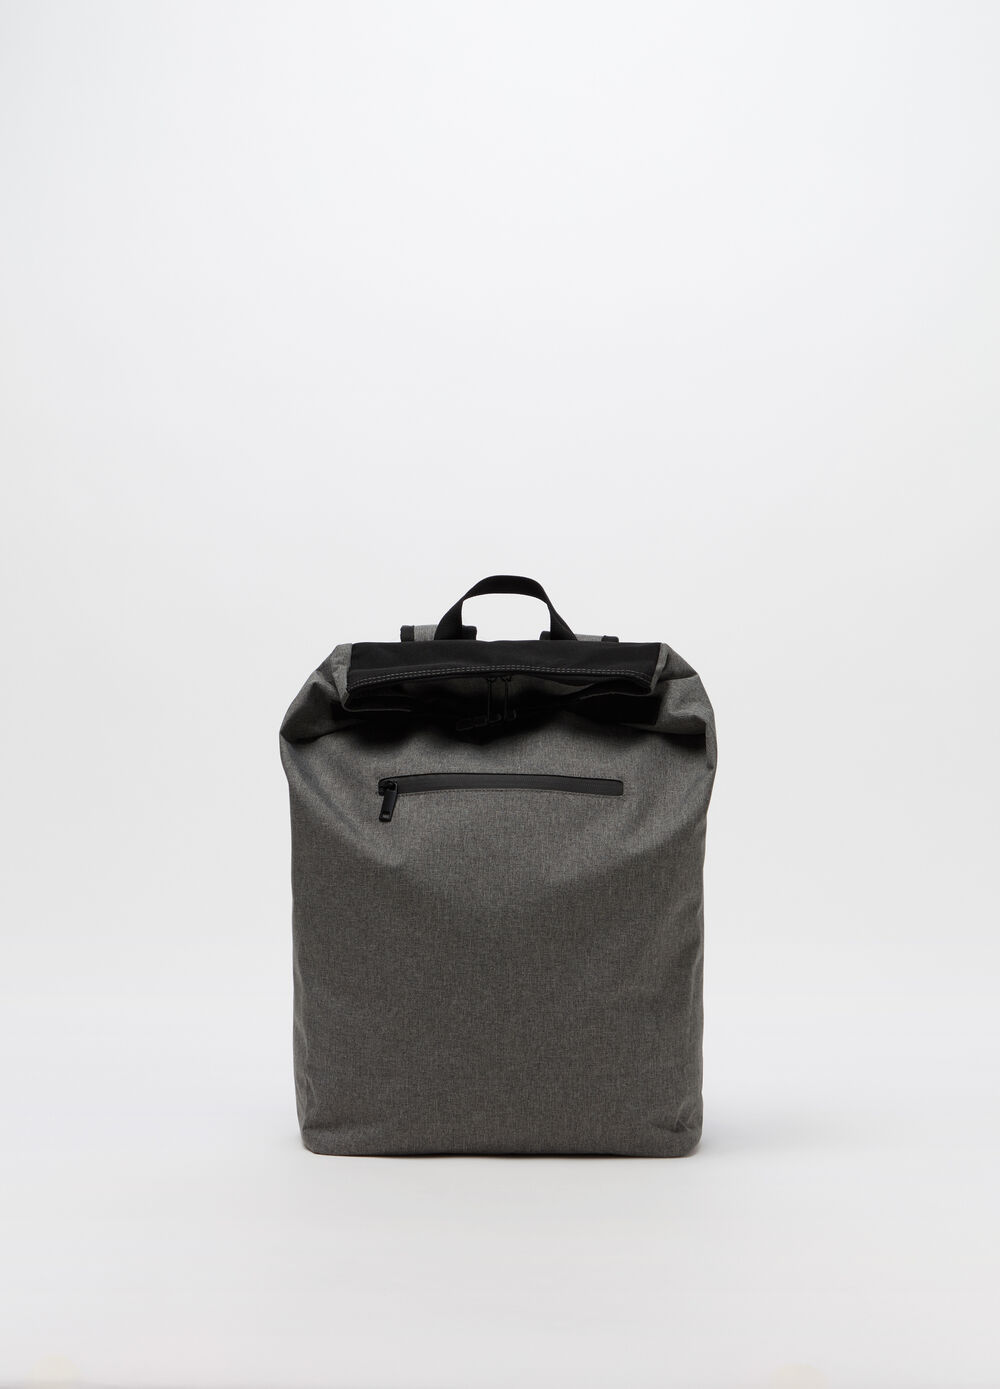 Backpack with adjustable shoulder straps and pocket